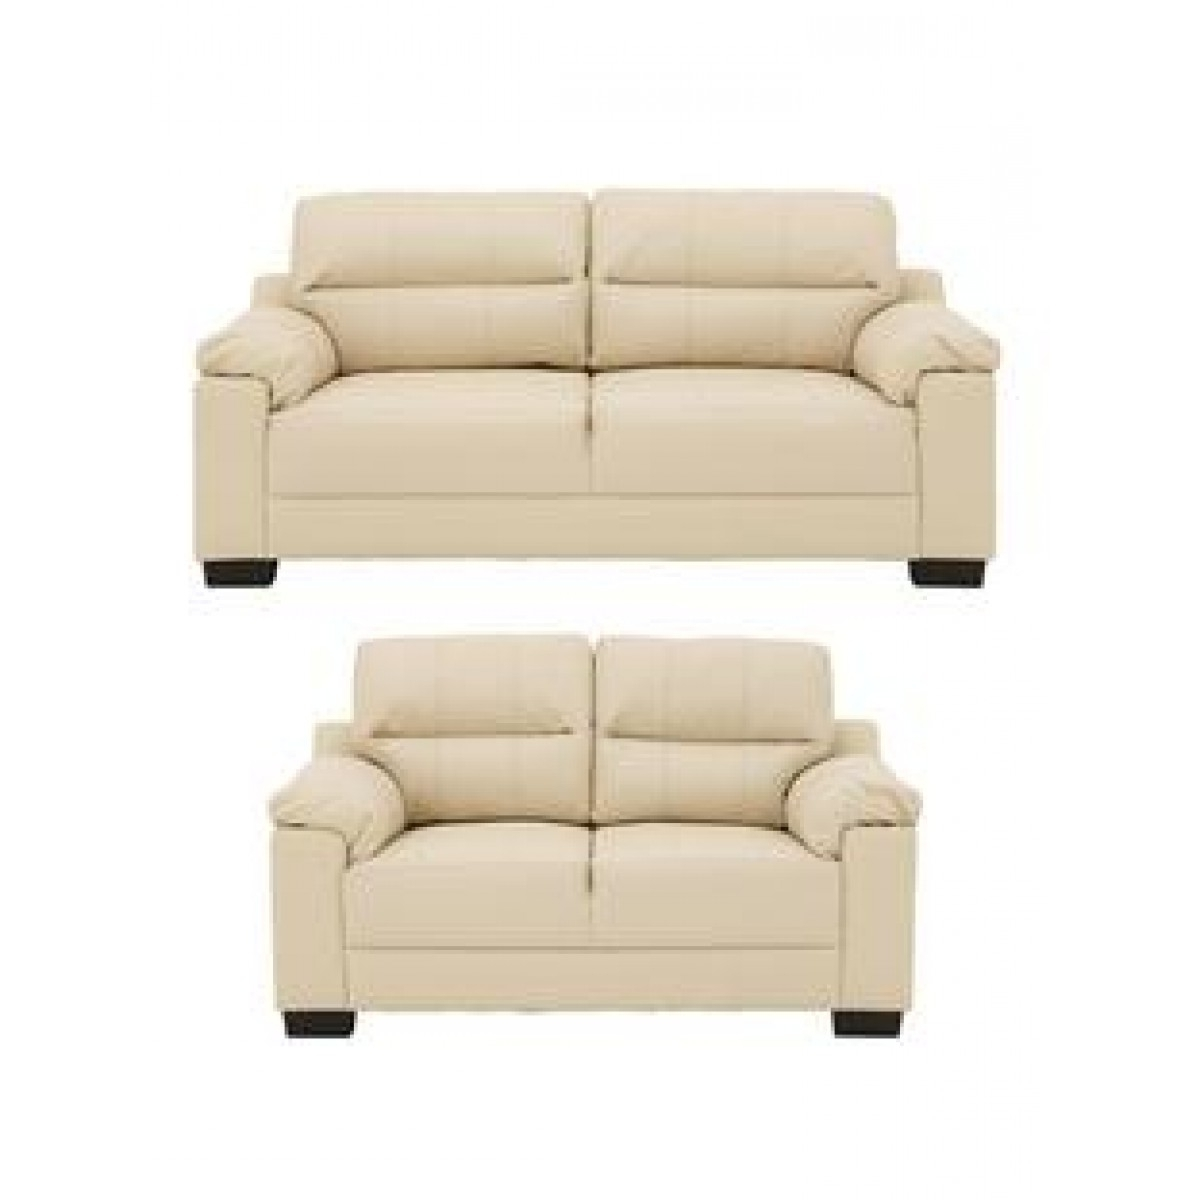 2 Seater Sofas With Regard To Well Known Saskia 3 Seater Plus 2 Seater Sofa Set – Furnico Village (View 4 of 20)